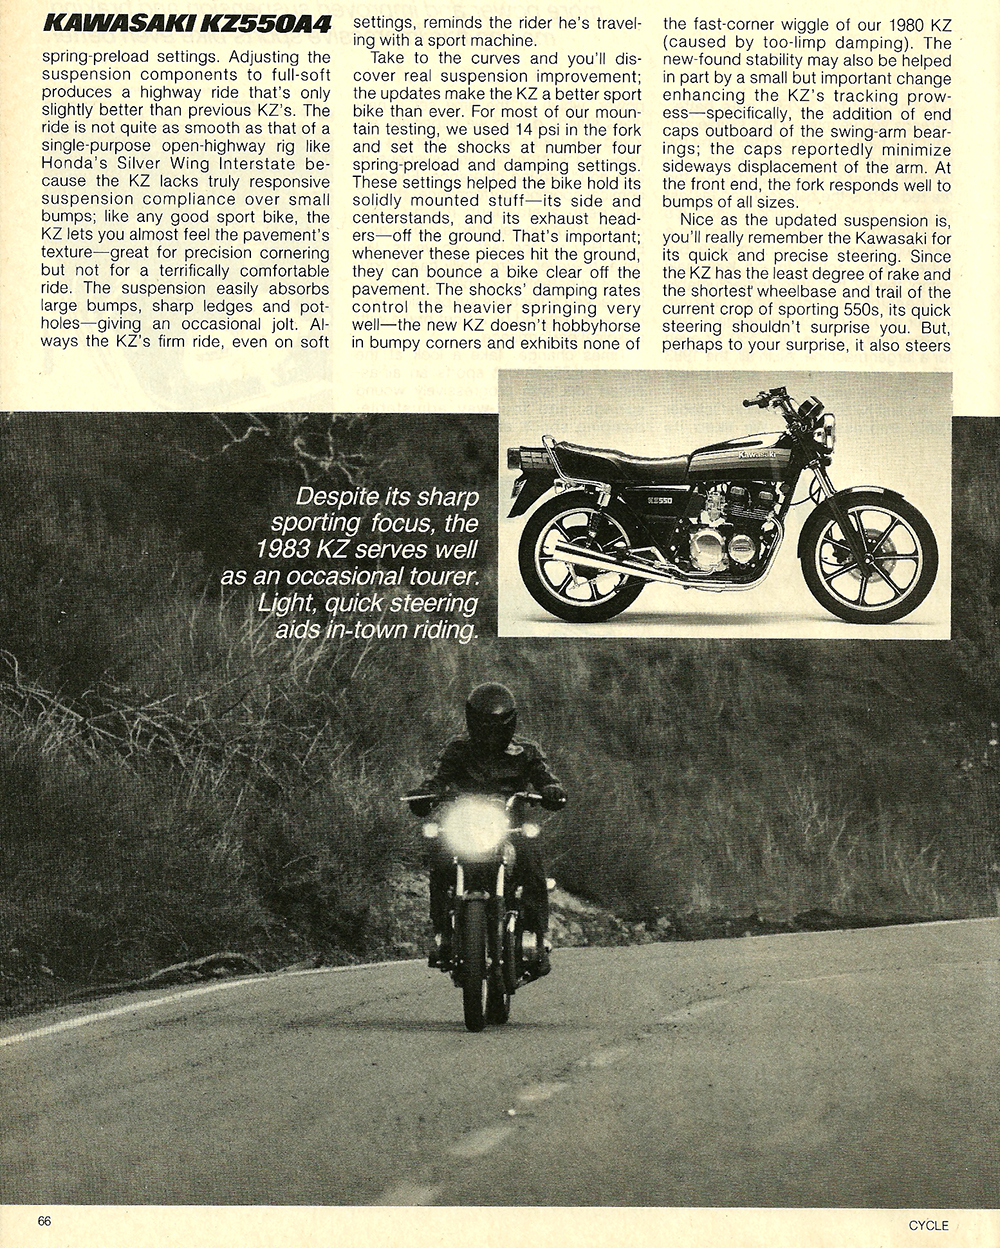 1983 Kawasaki KZ550 A4 road test 2.jpg